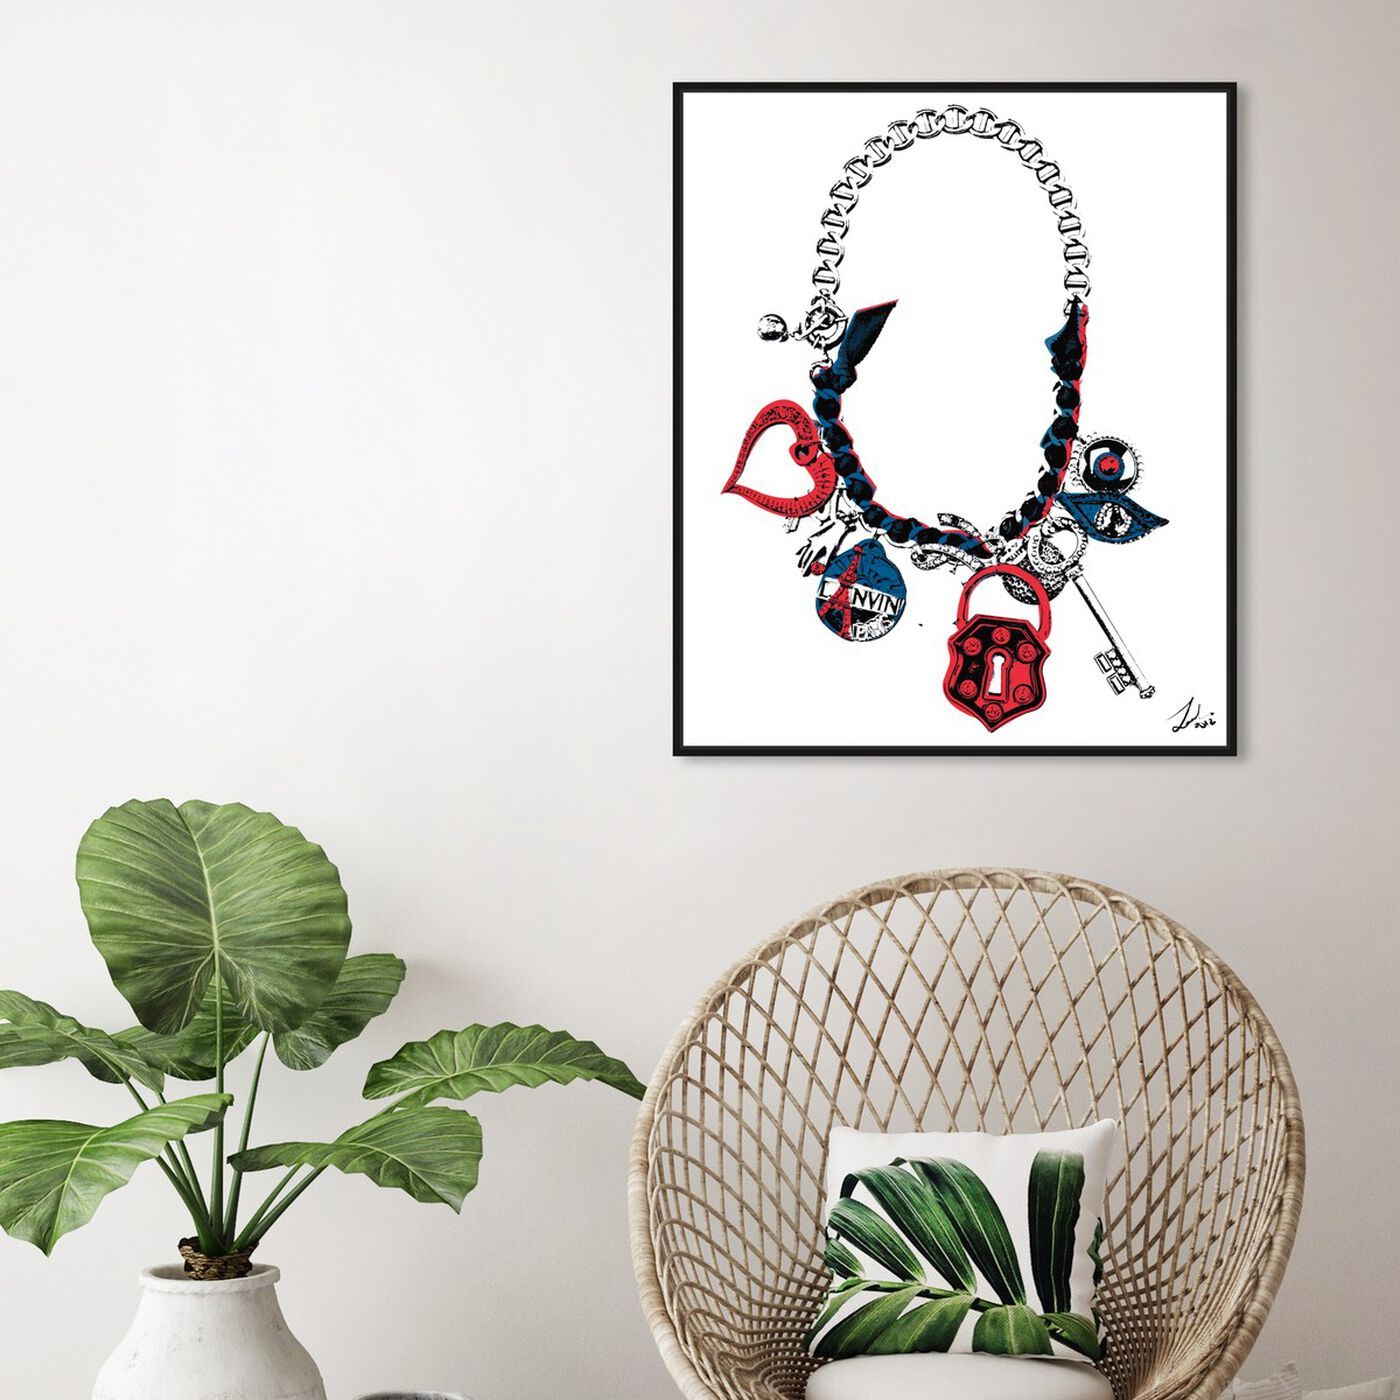 Hanging view of Paris on my Neck featuring fashion and glam and jewelry art.